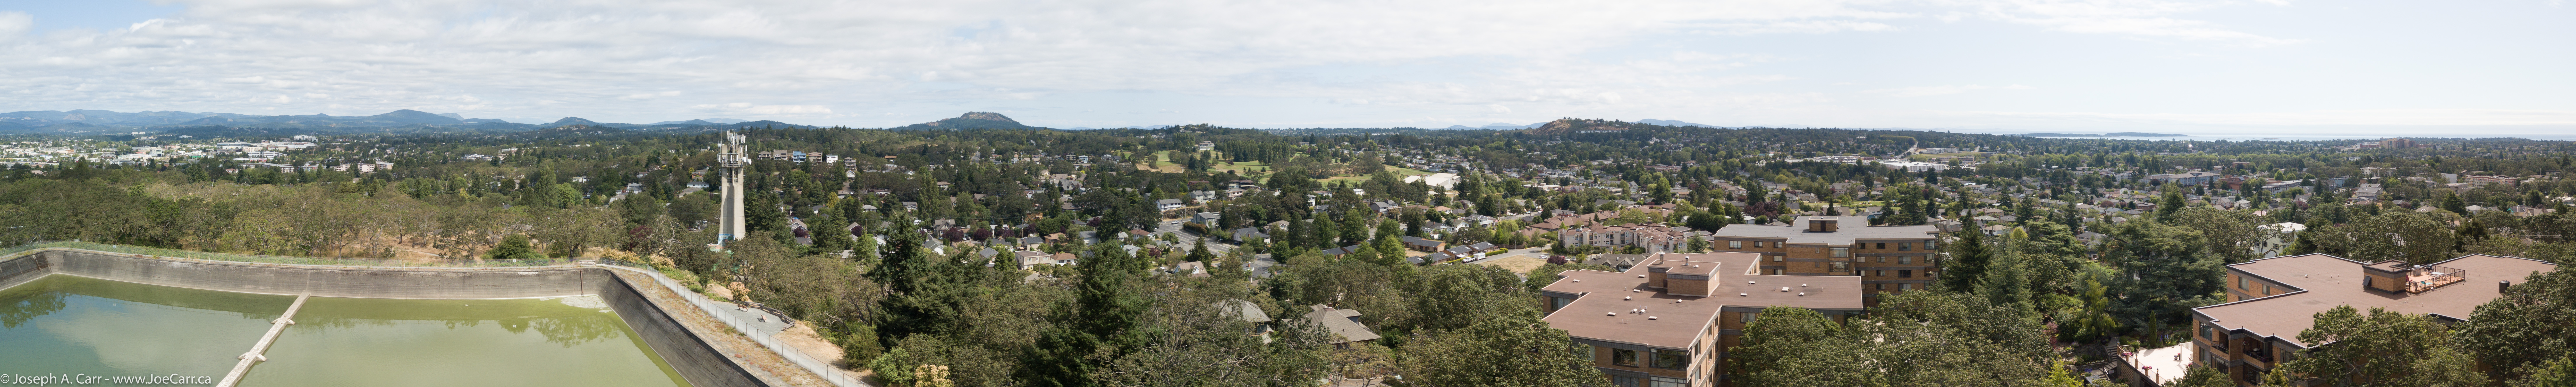 Aerial panorama from the Smith Hill reservoir by Summit Park - July 3, 2017